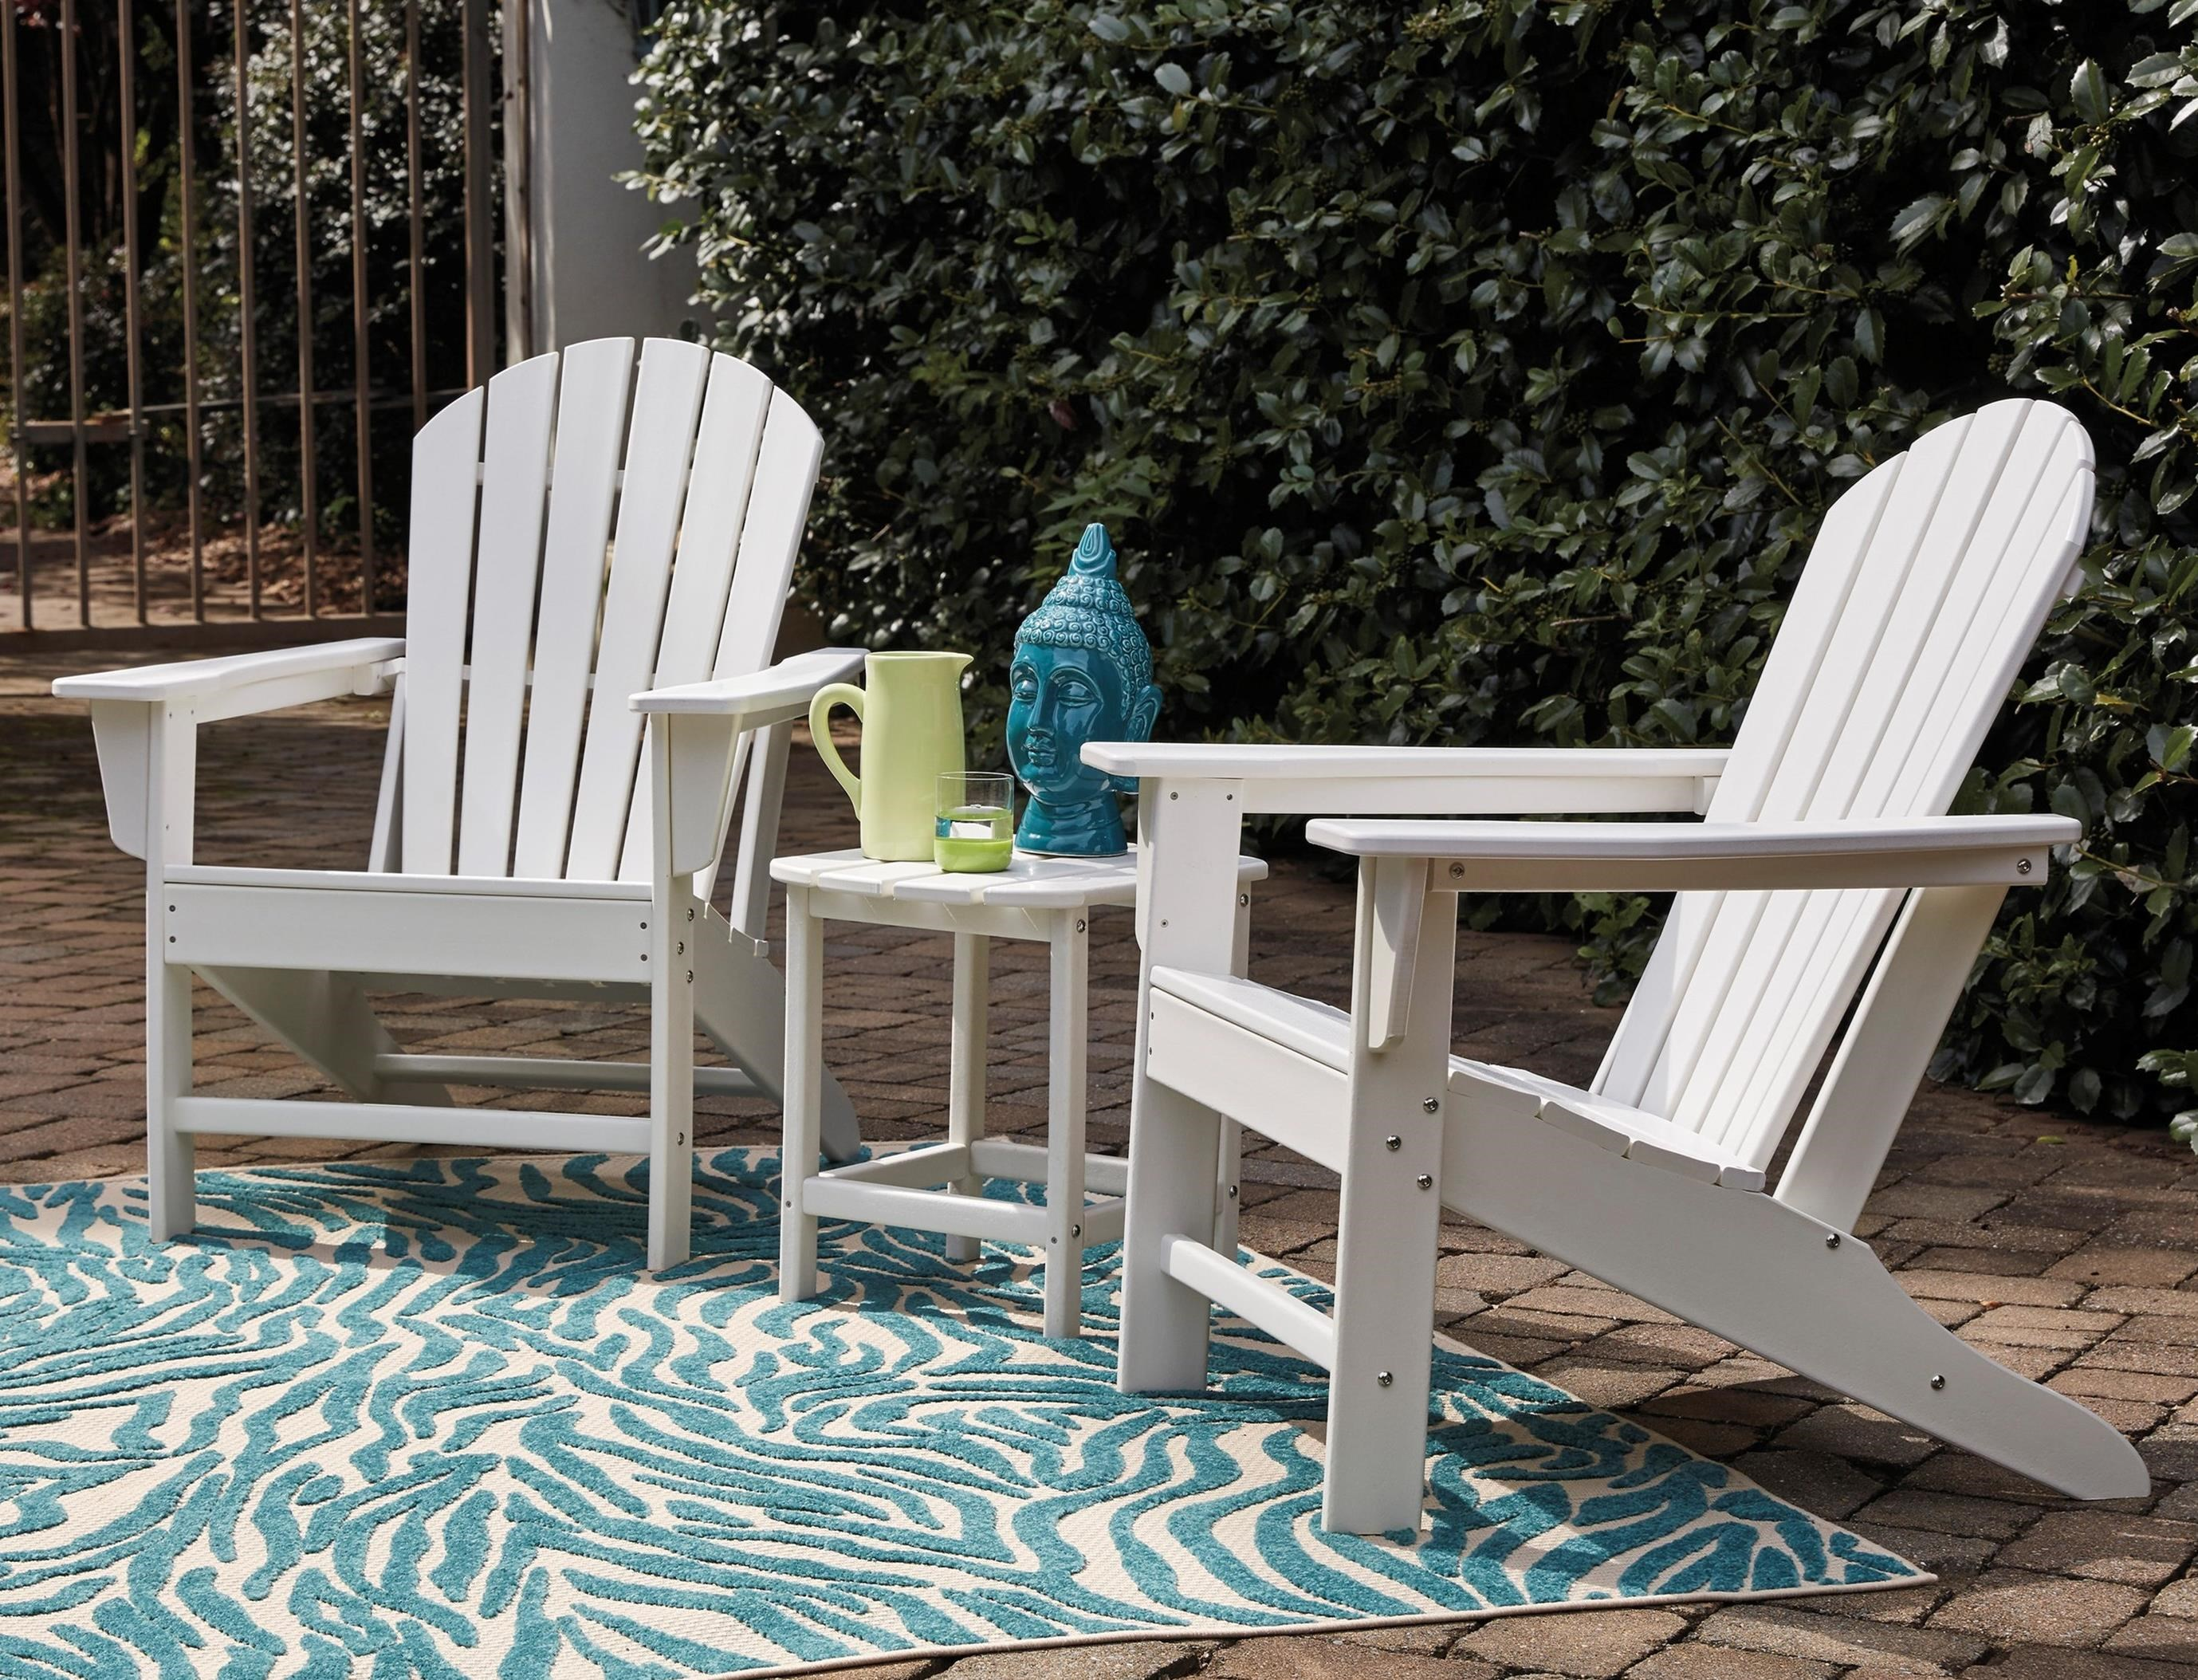 2 Adirondack Chairs and End Table Set